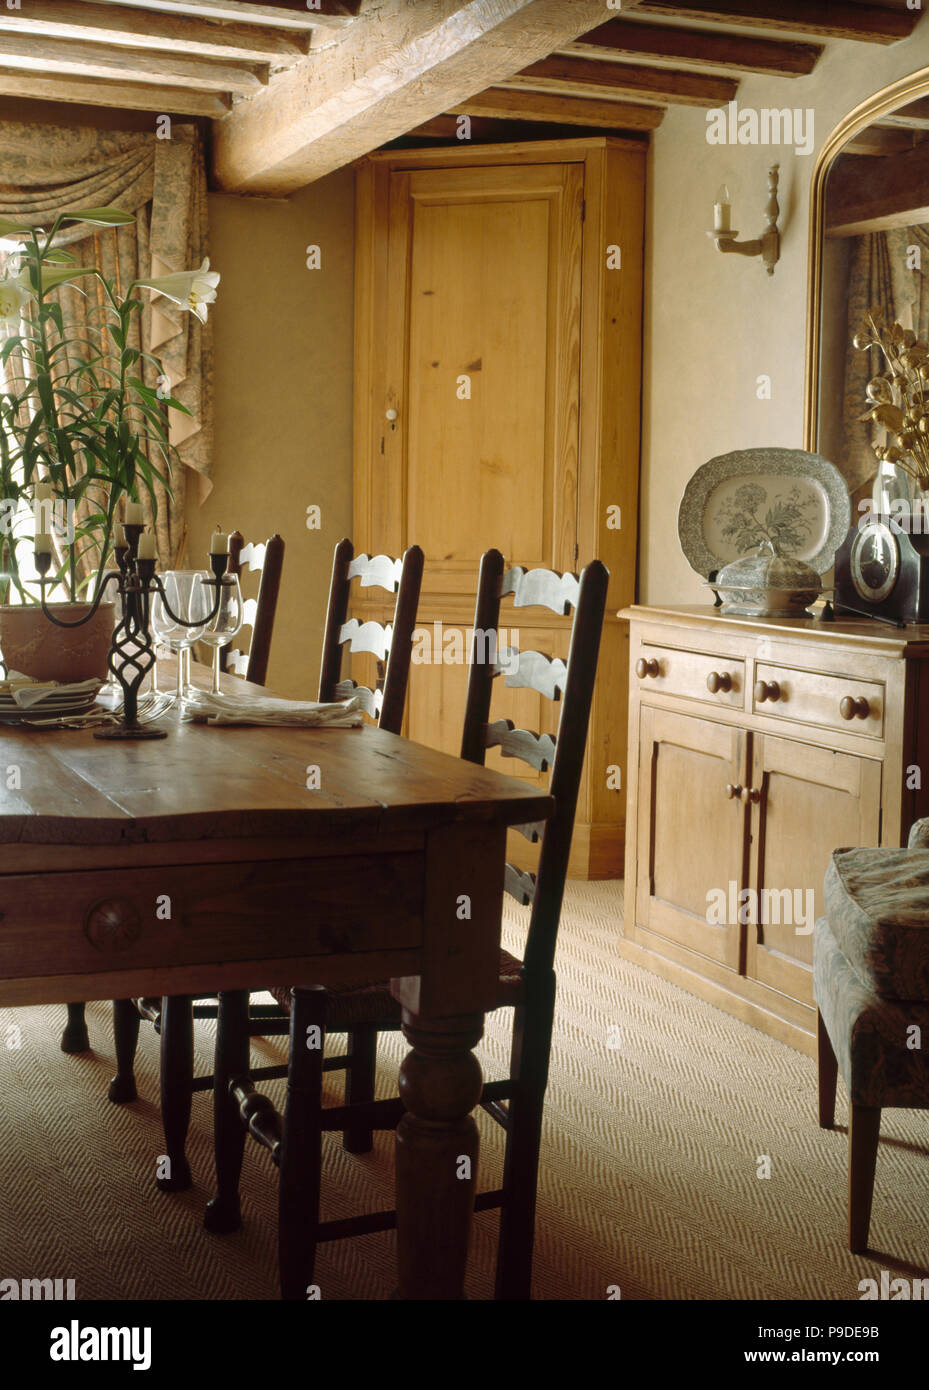 Charmant Sisal Carpet In Beamed Cottage Dining Room With Antique ...